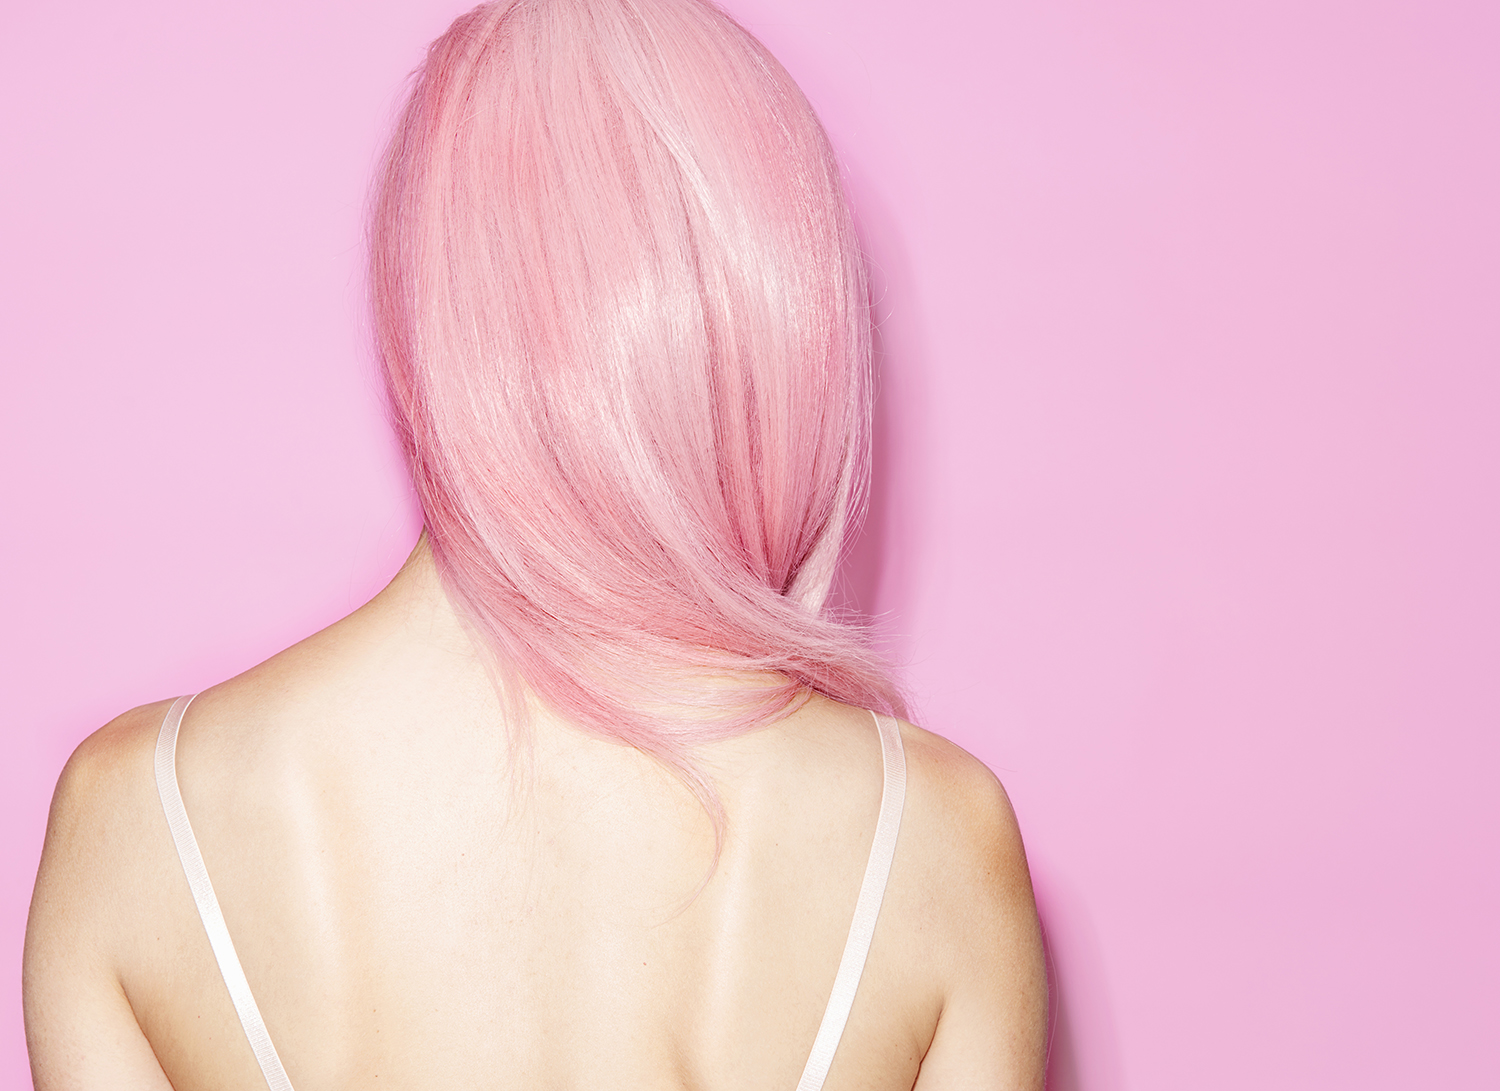 Pink Hair and Pink Background